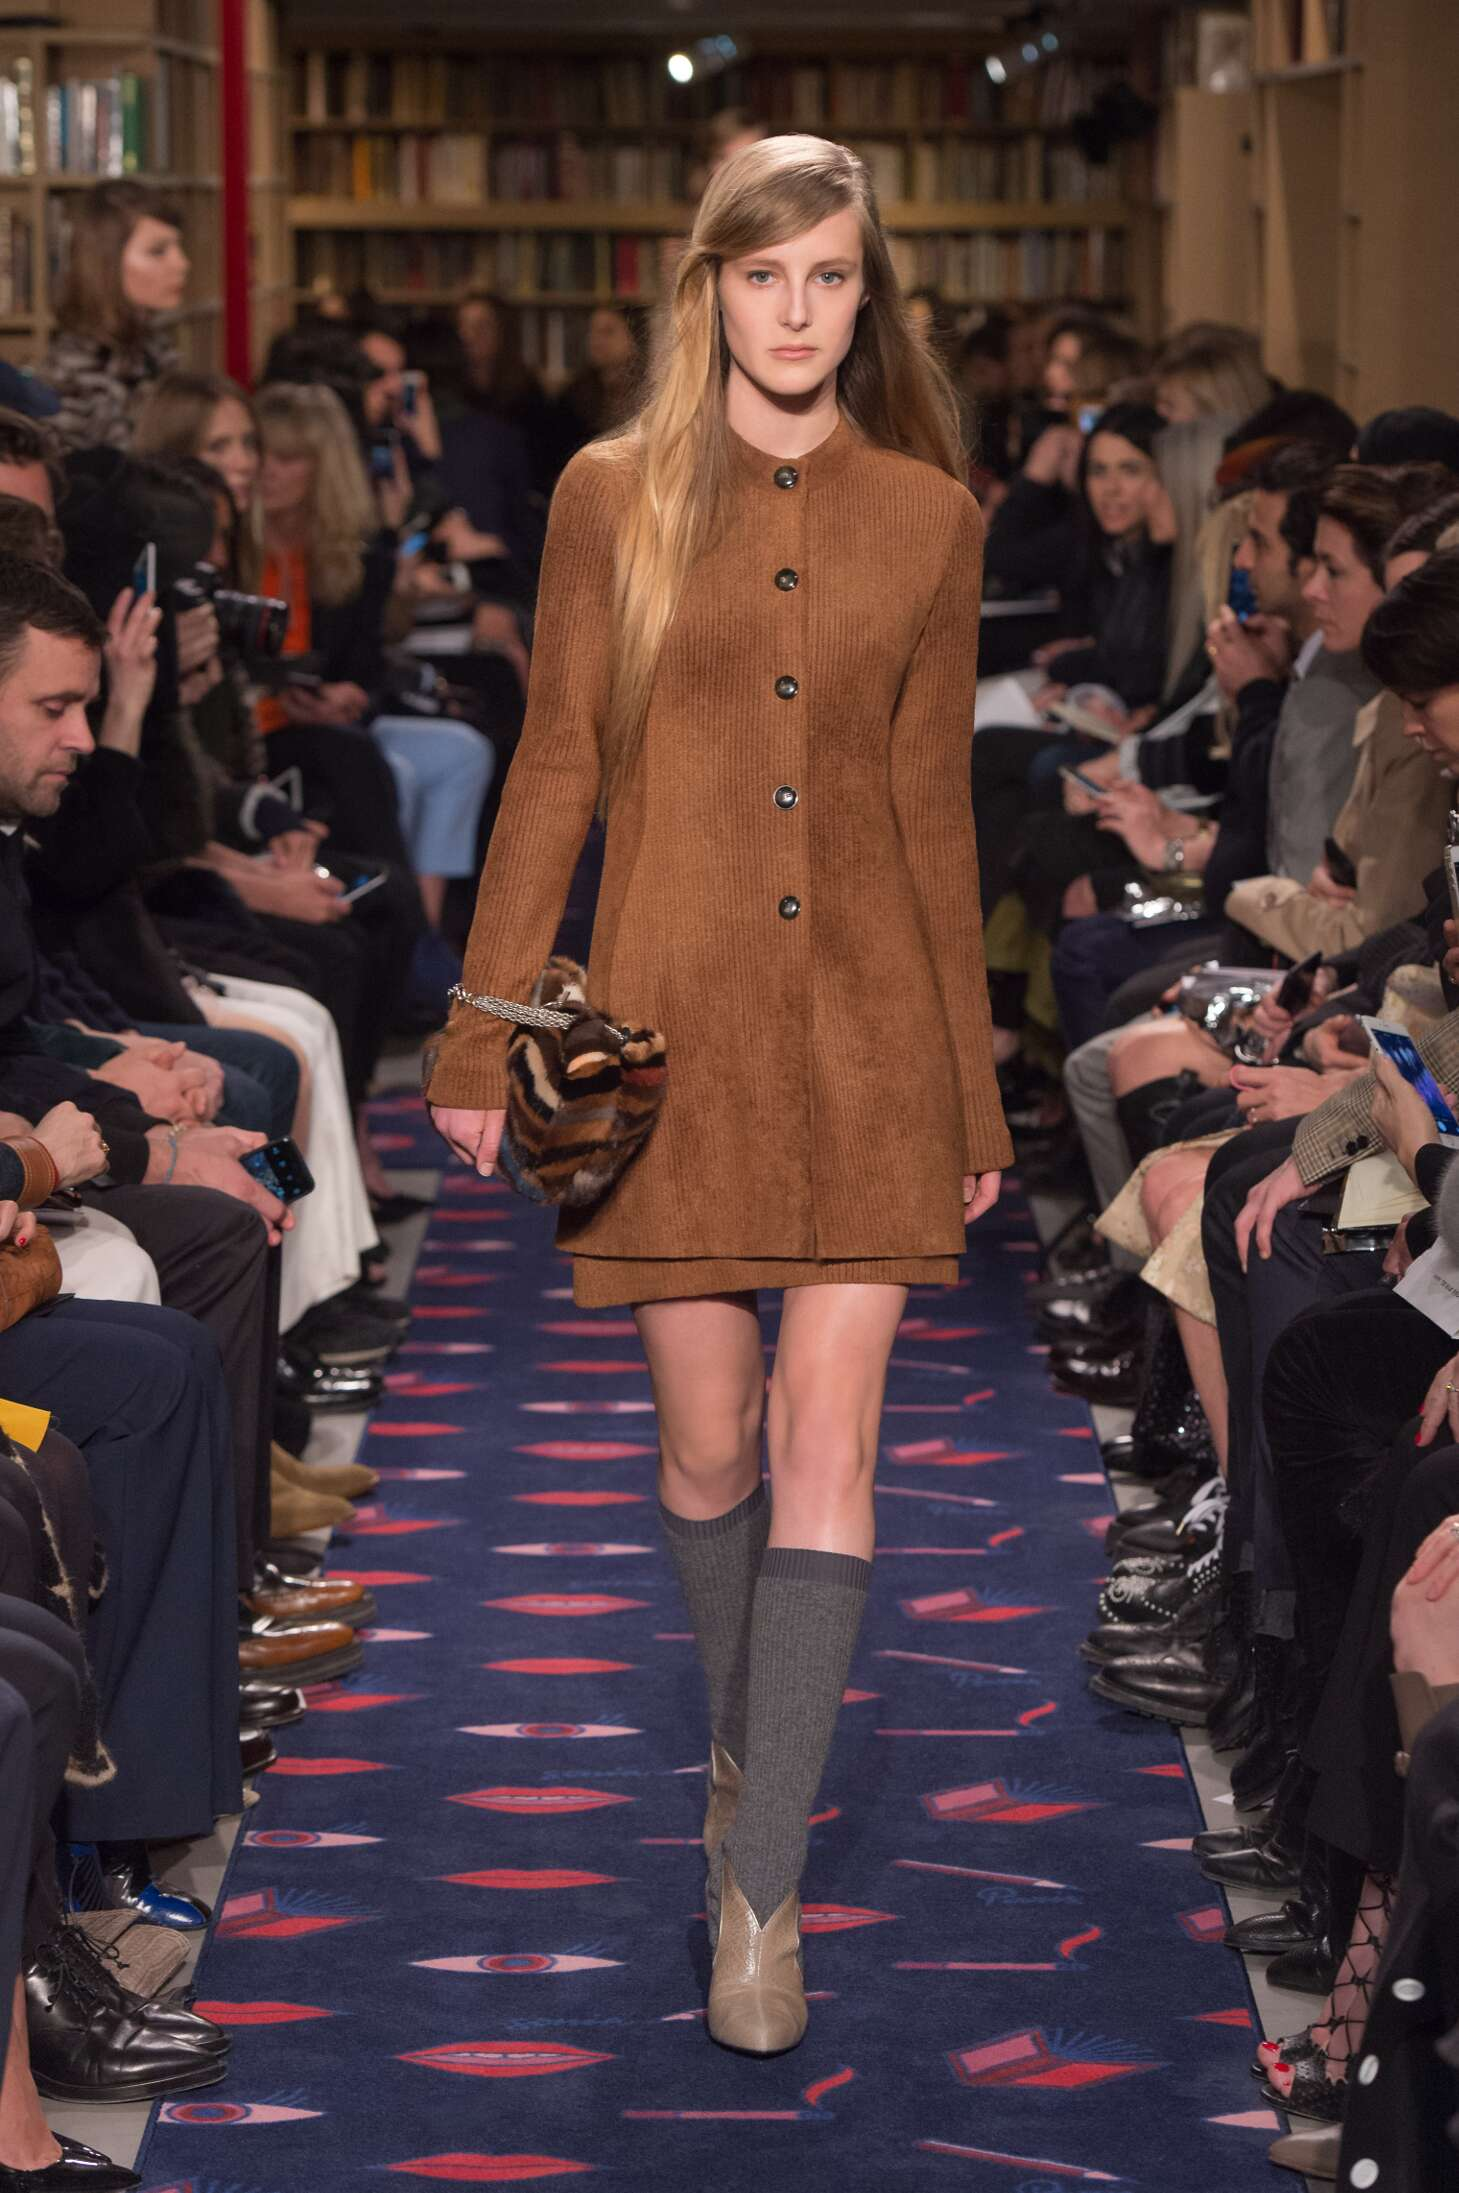 Sonia Rykiel Collection 2015